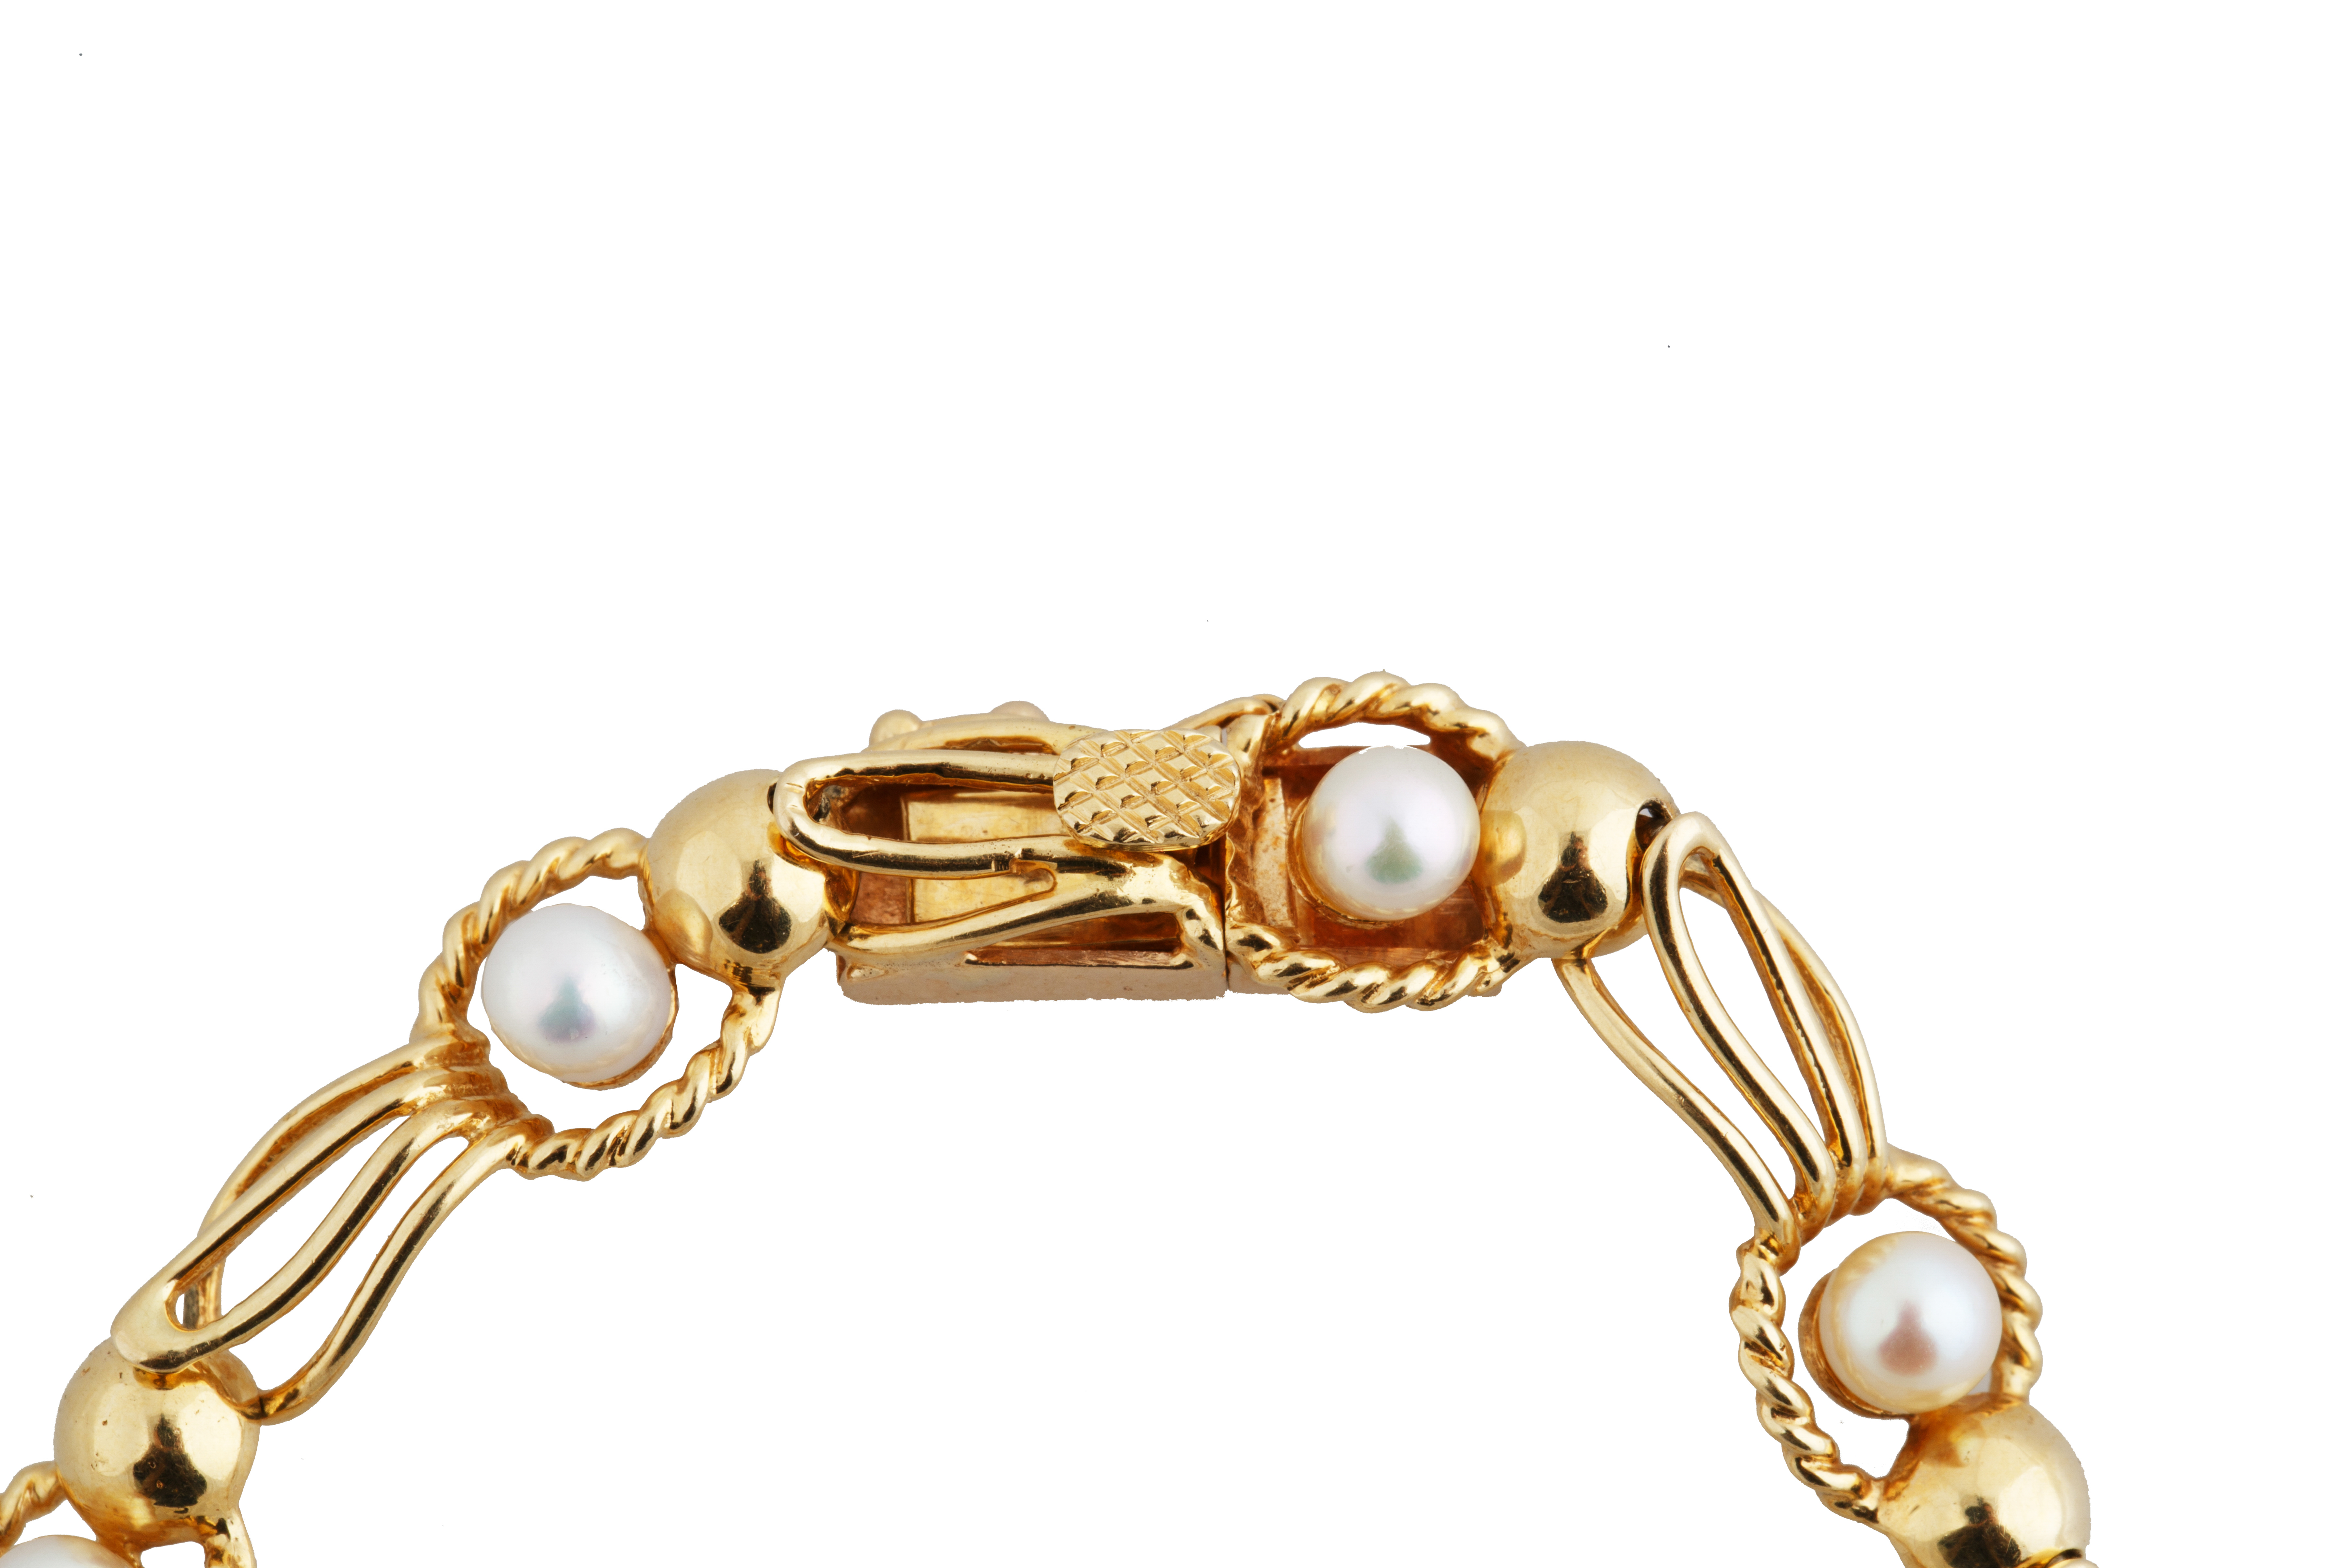 PEARL AND 18KT GOLD BRACELET AND NECKLACE SET - Image 6 of 8